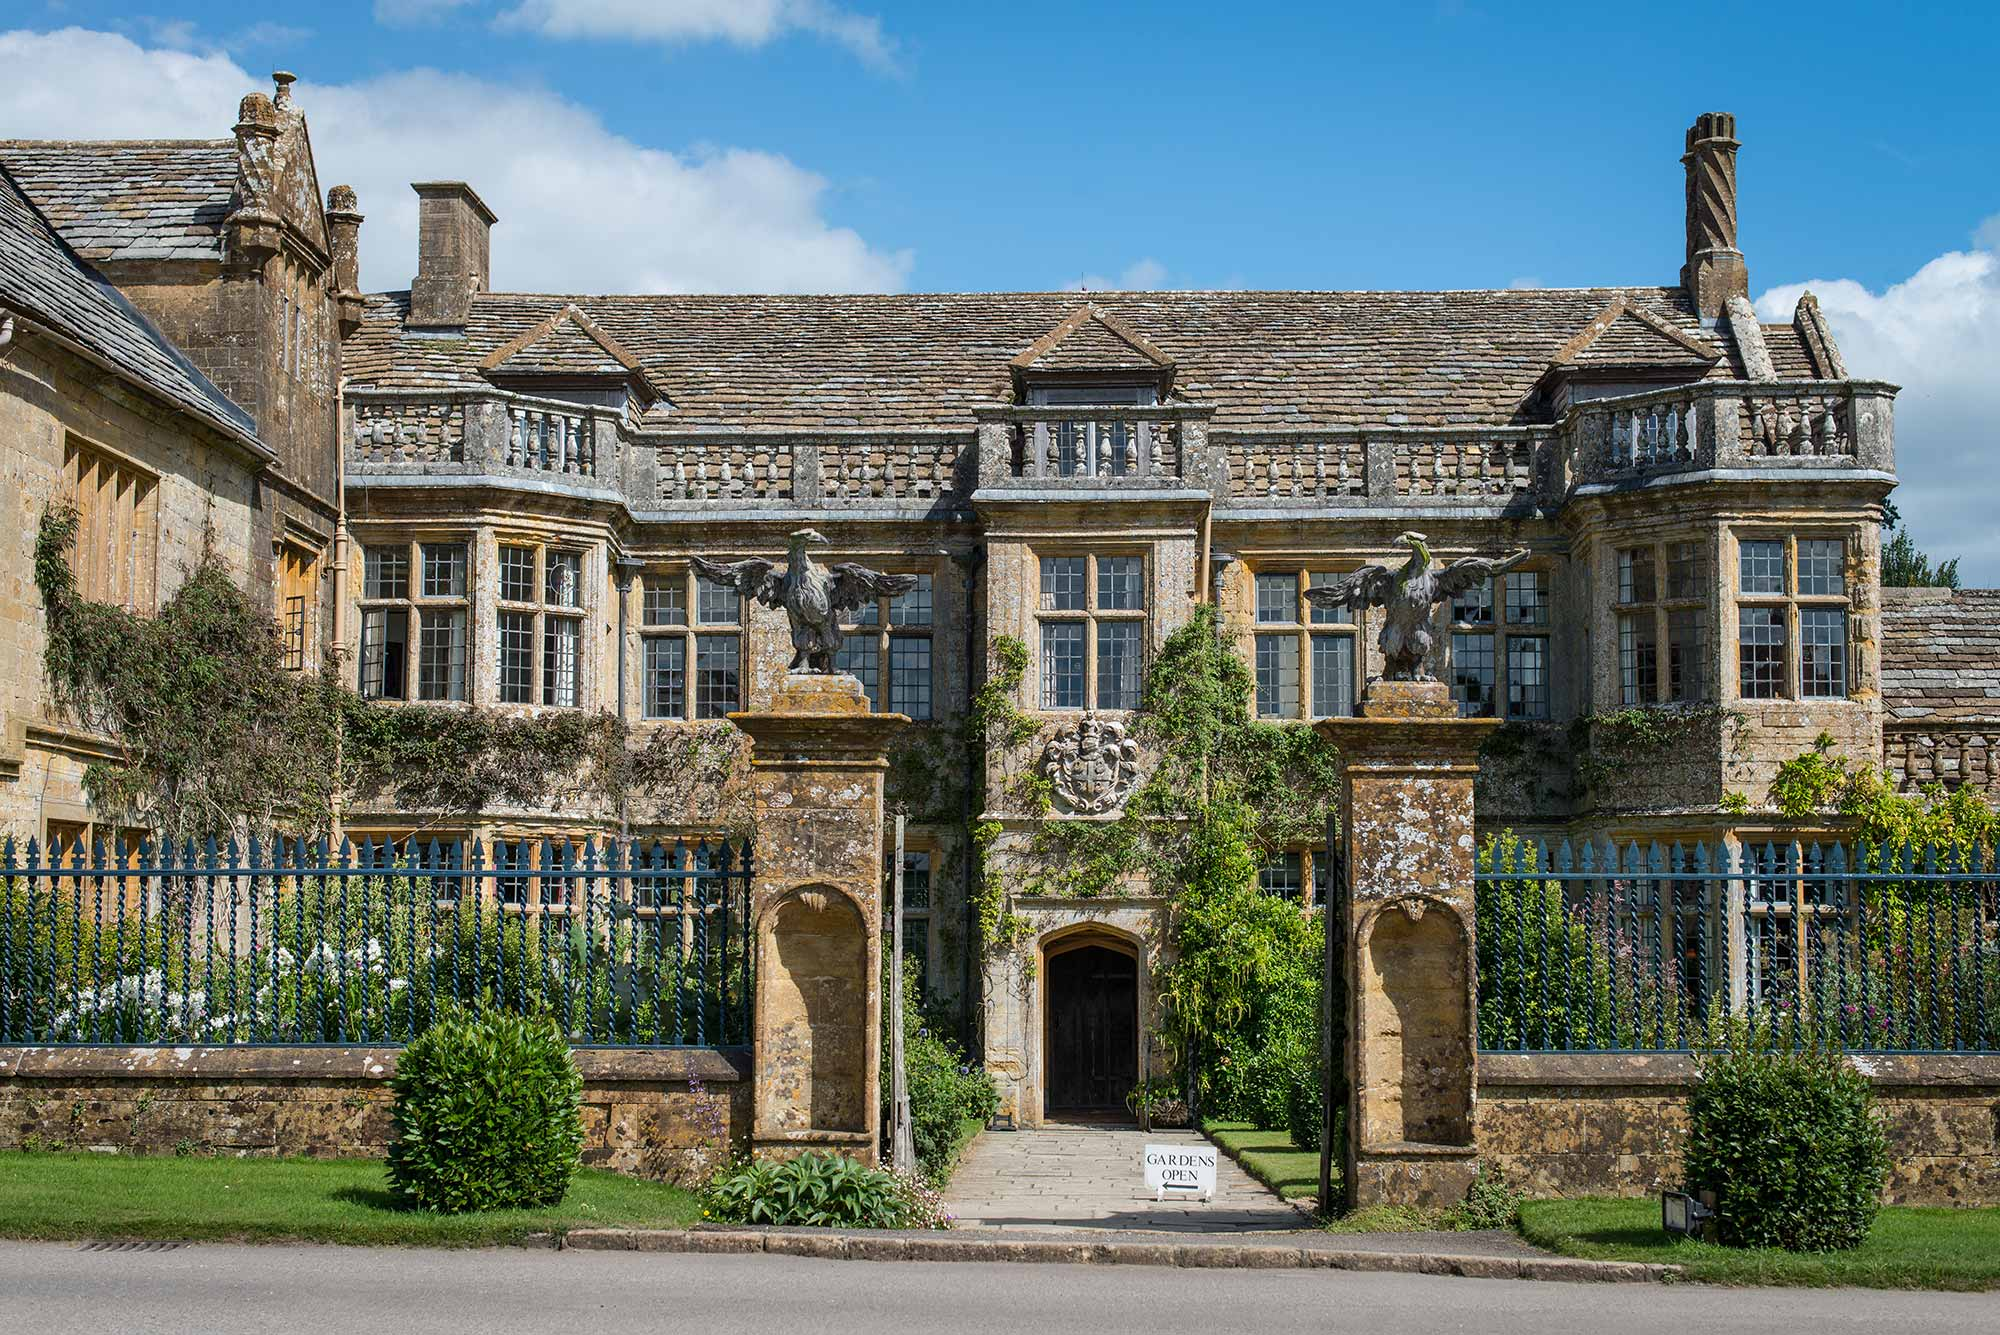 Mapperton House and Gardens - Best of Dorset Attractions